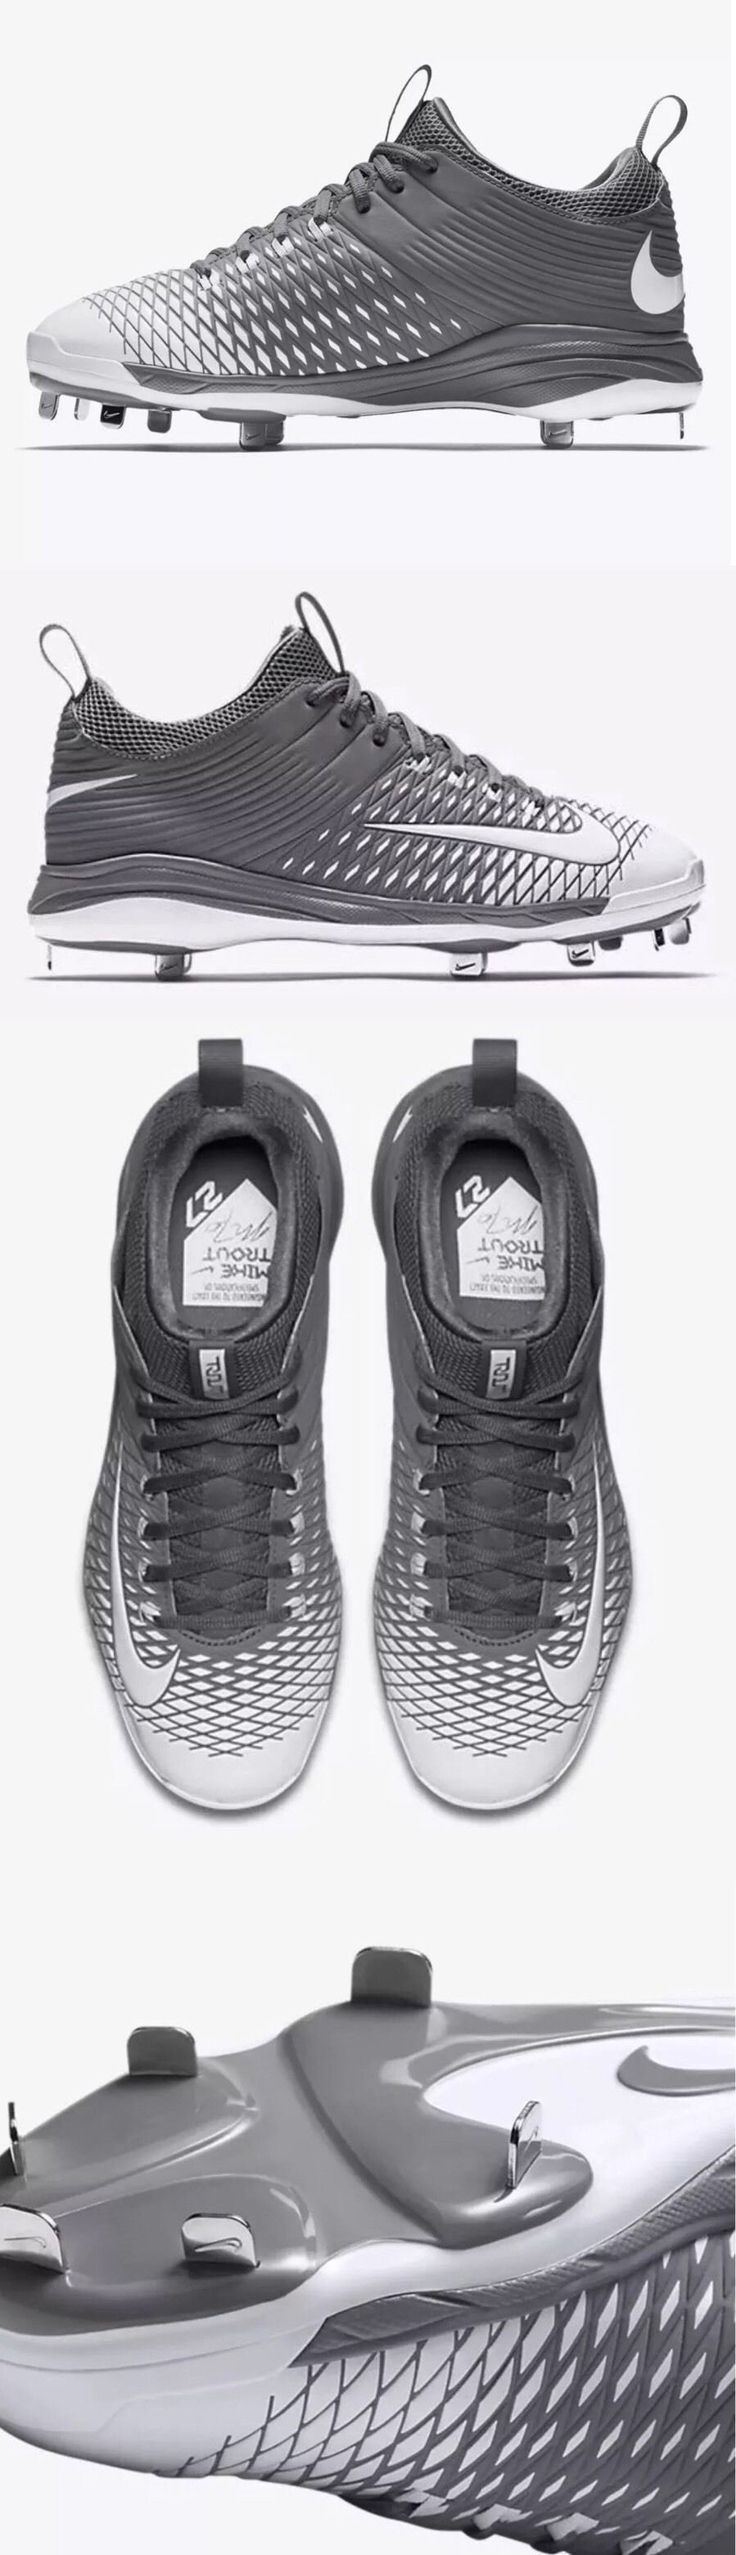 Mens 159059: New Nike Men S Lunar Trout 2 Pro Metal Baseball Cleats Gray White 807133-010 -> BUY IT NOW ONLY: $30 on eBay!